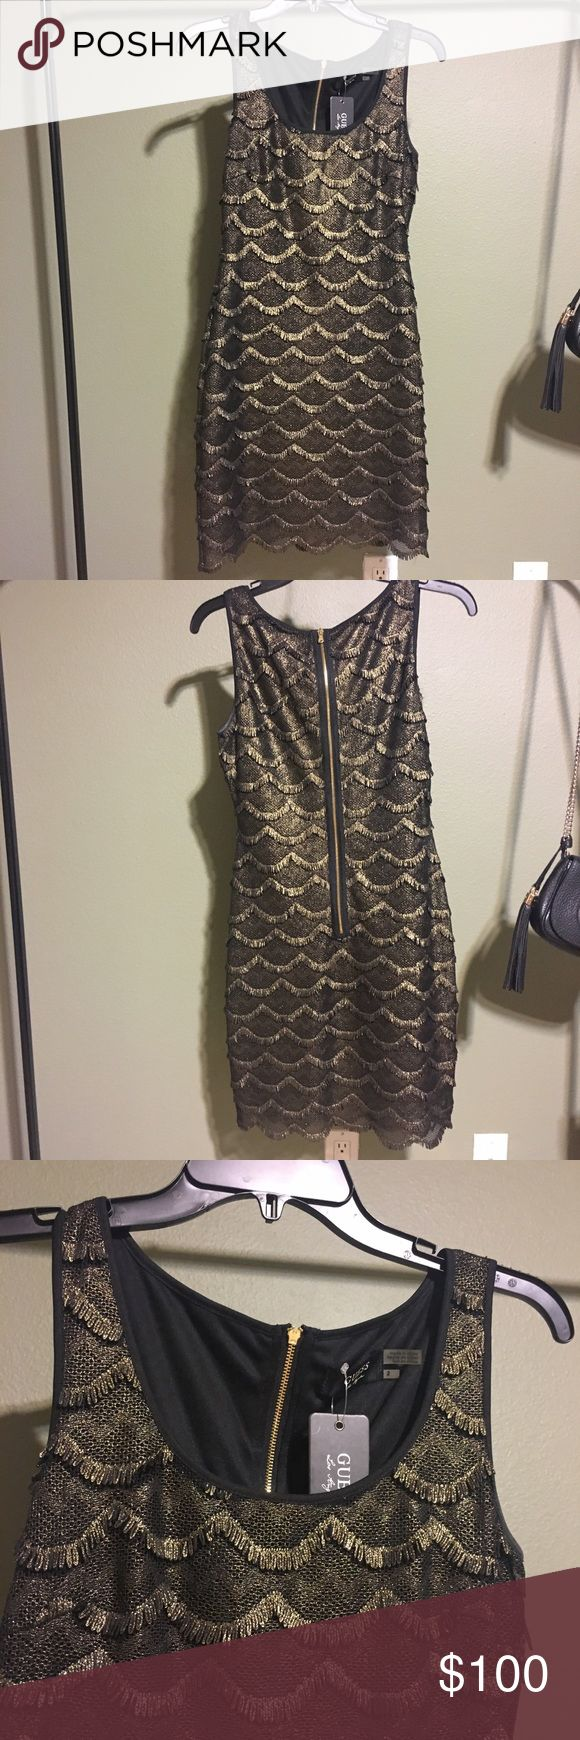 GUESS Dress NWT Guess 'Maria' black and gold dress. Brand new with tags. Guess Dresses